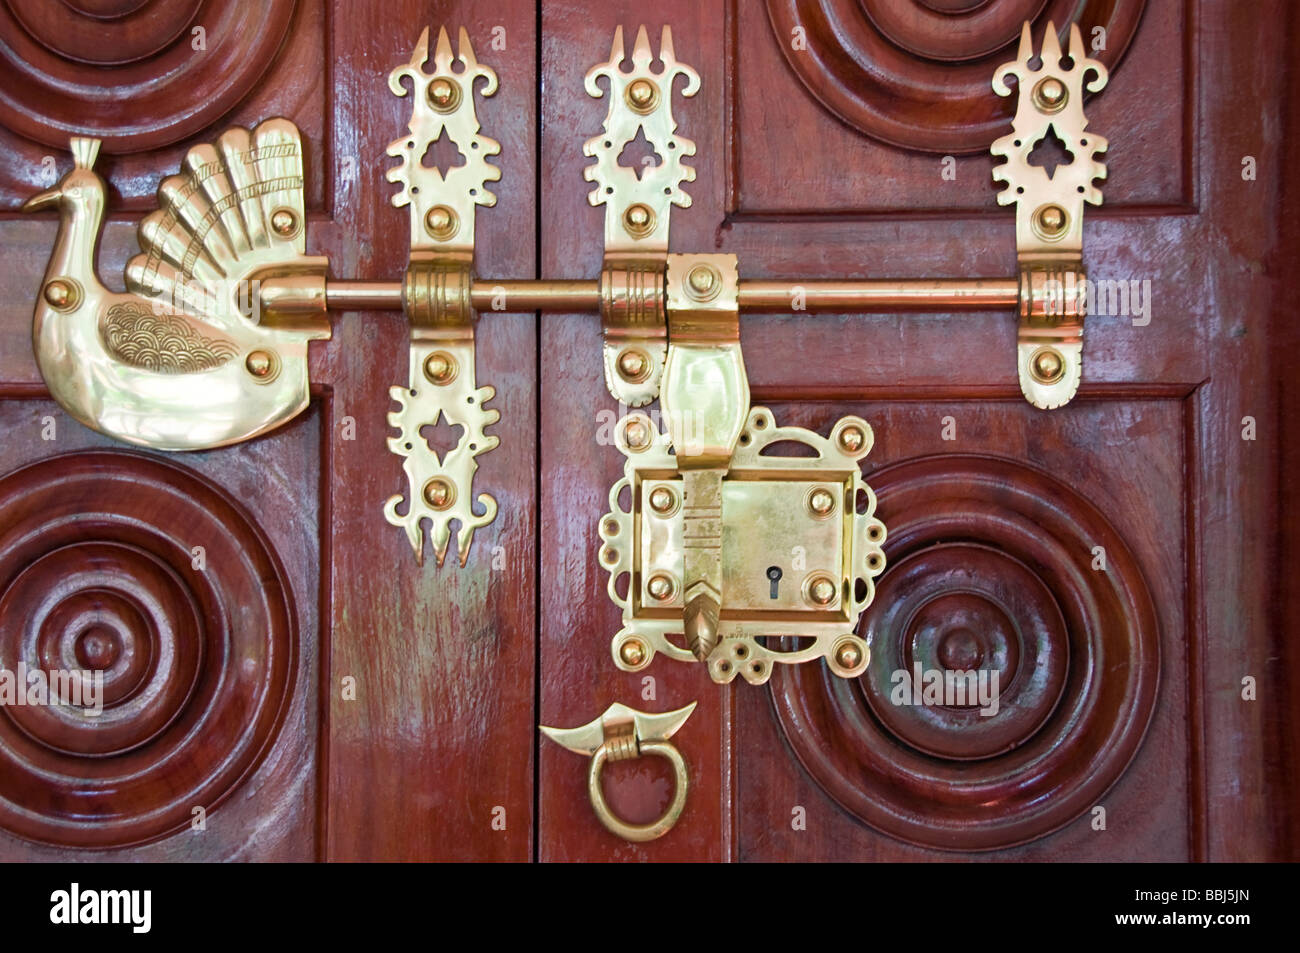 Antique Traditional Brass Door Latch And Lock On Wooden Doors, Kerala India